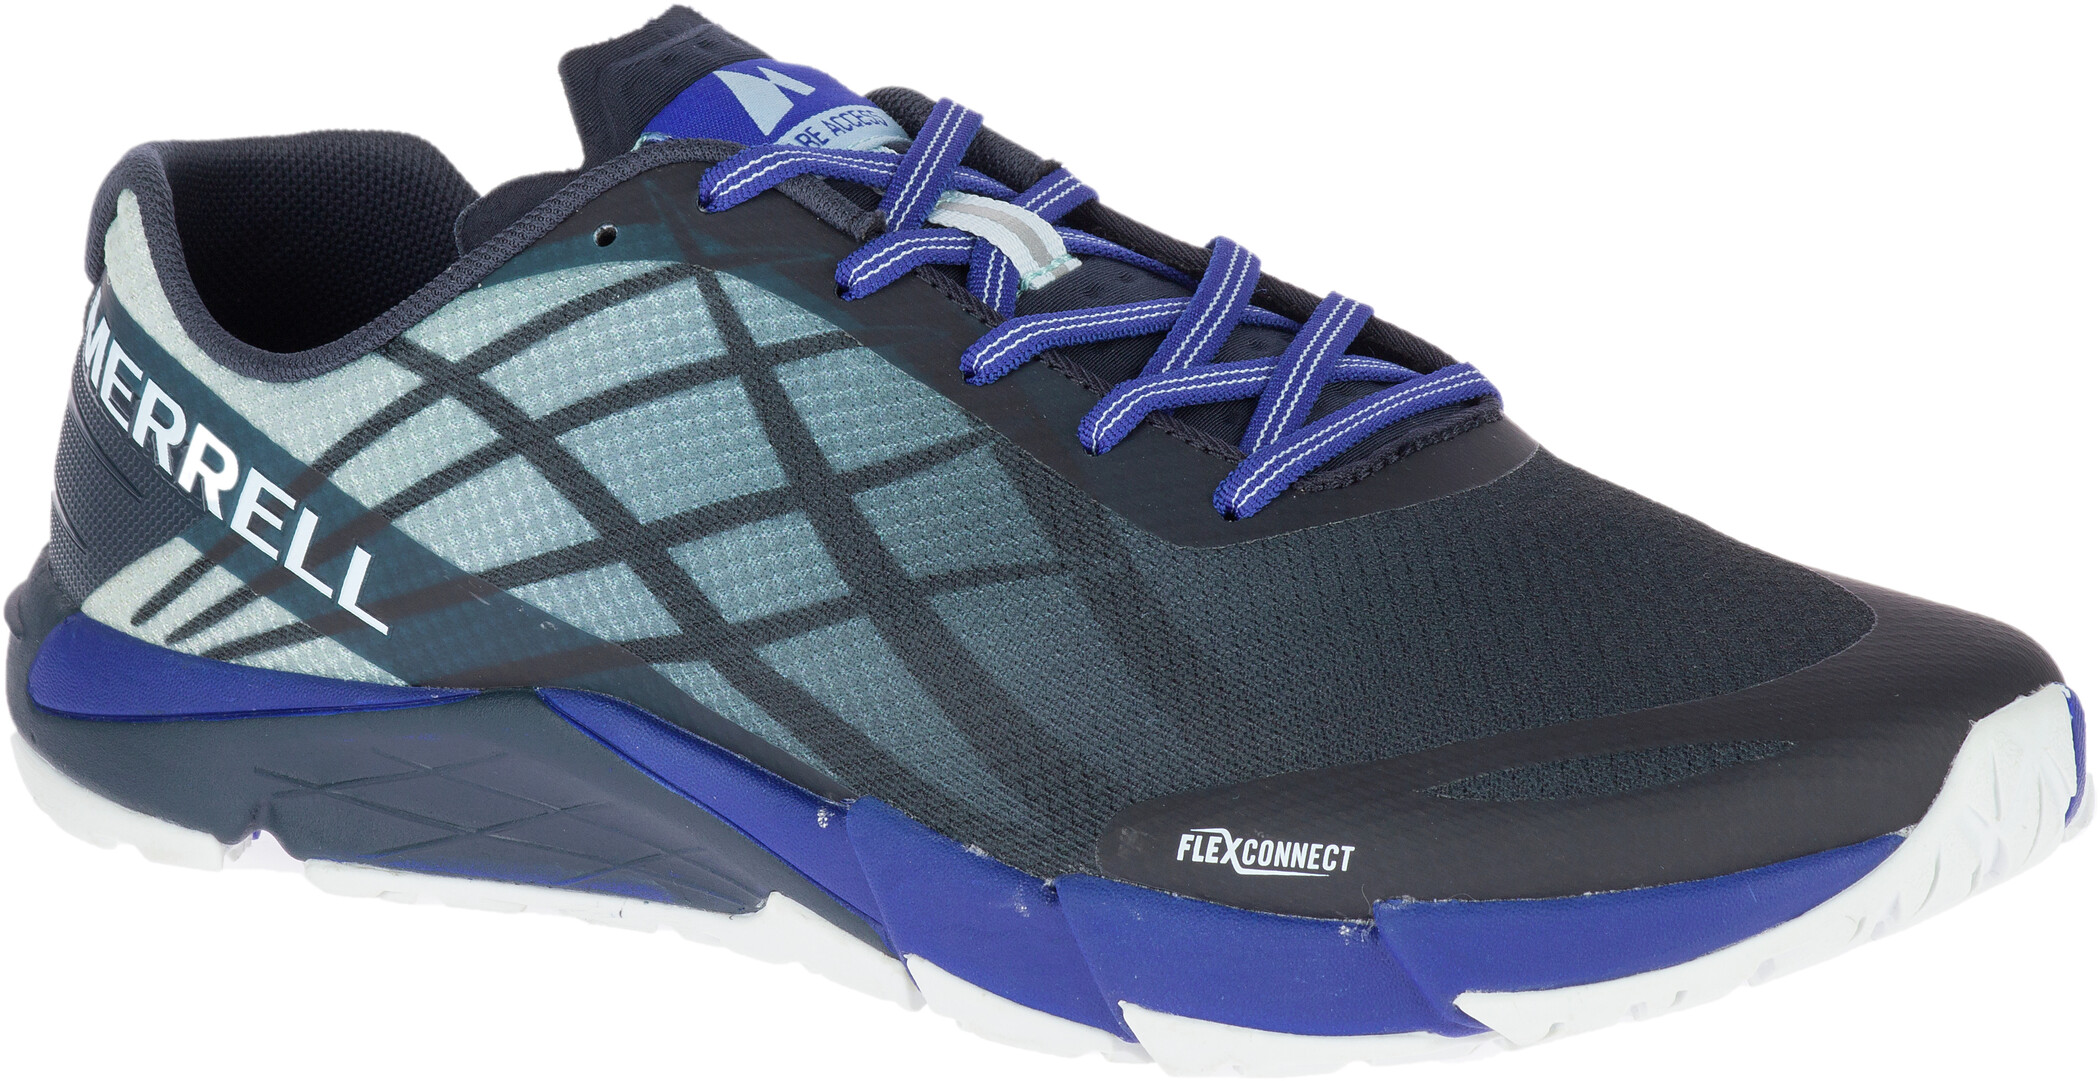 Merrell Bare Access Flex Sko Herrer, blue sport | Running shoes